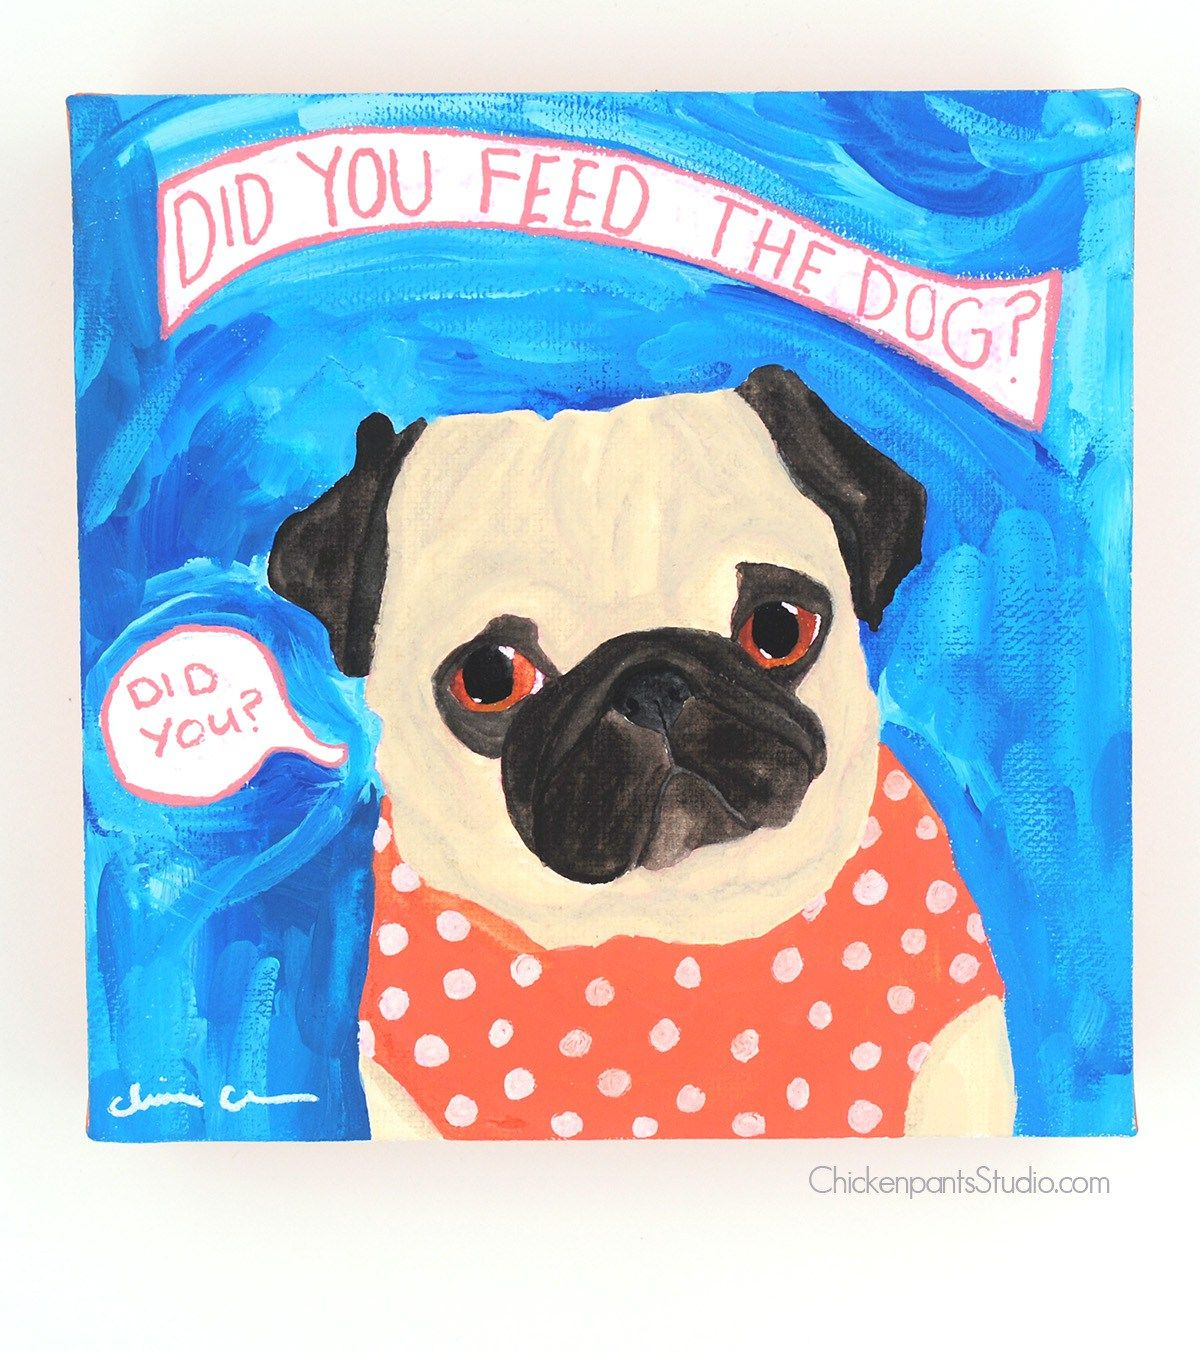 Daily Pug Painting Project Week 39 And A Boston Terrier Too